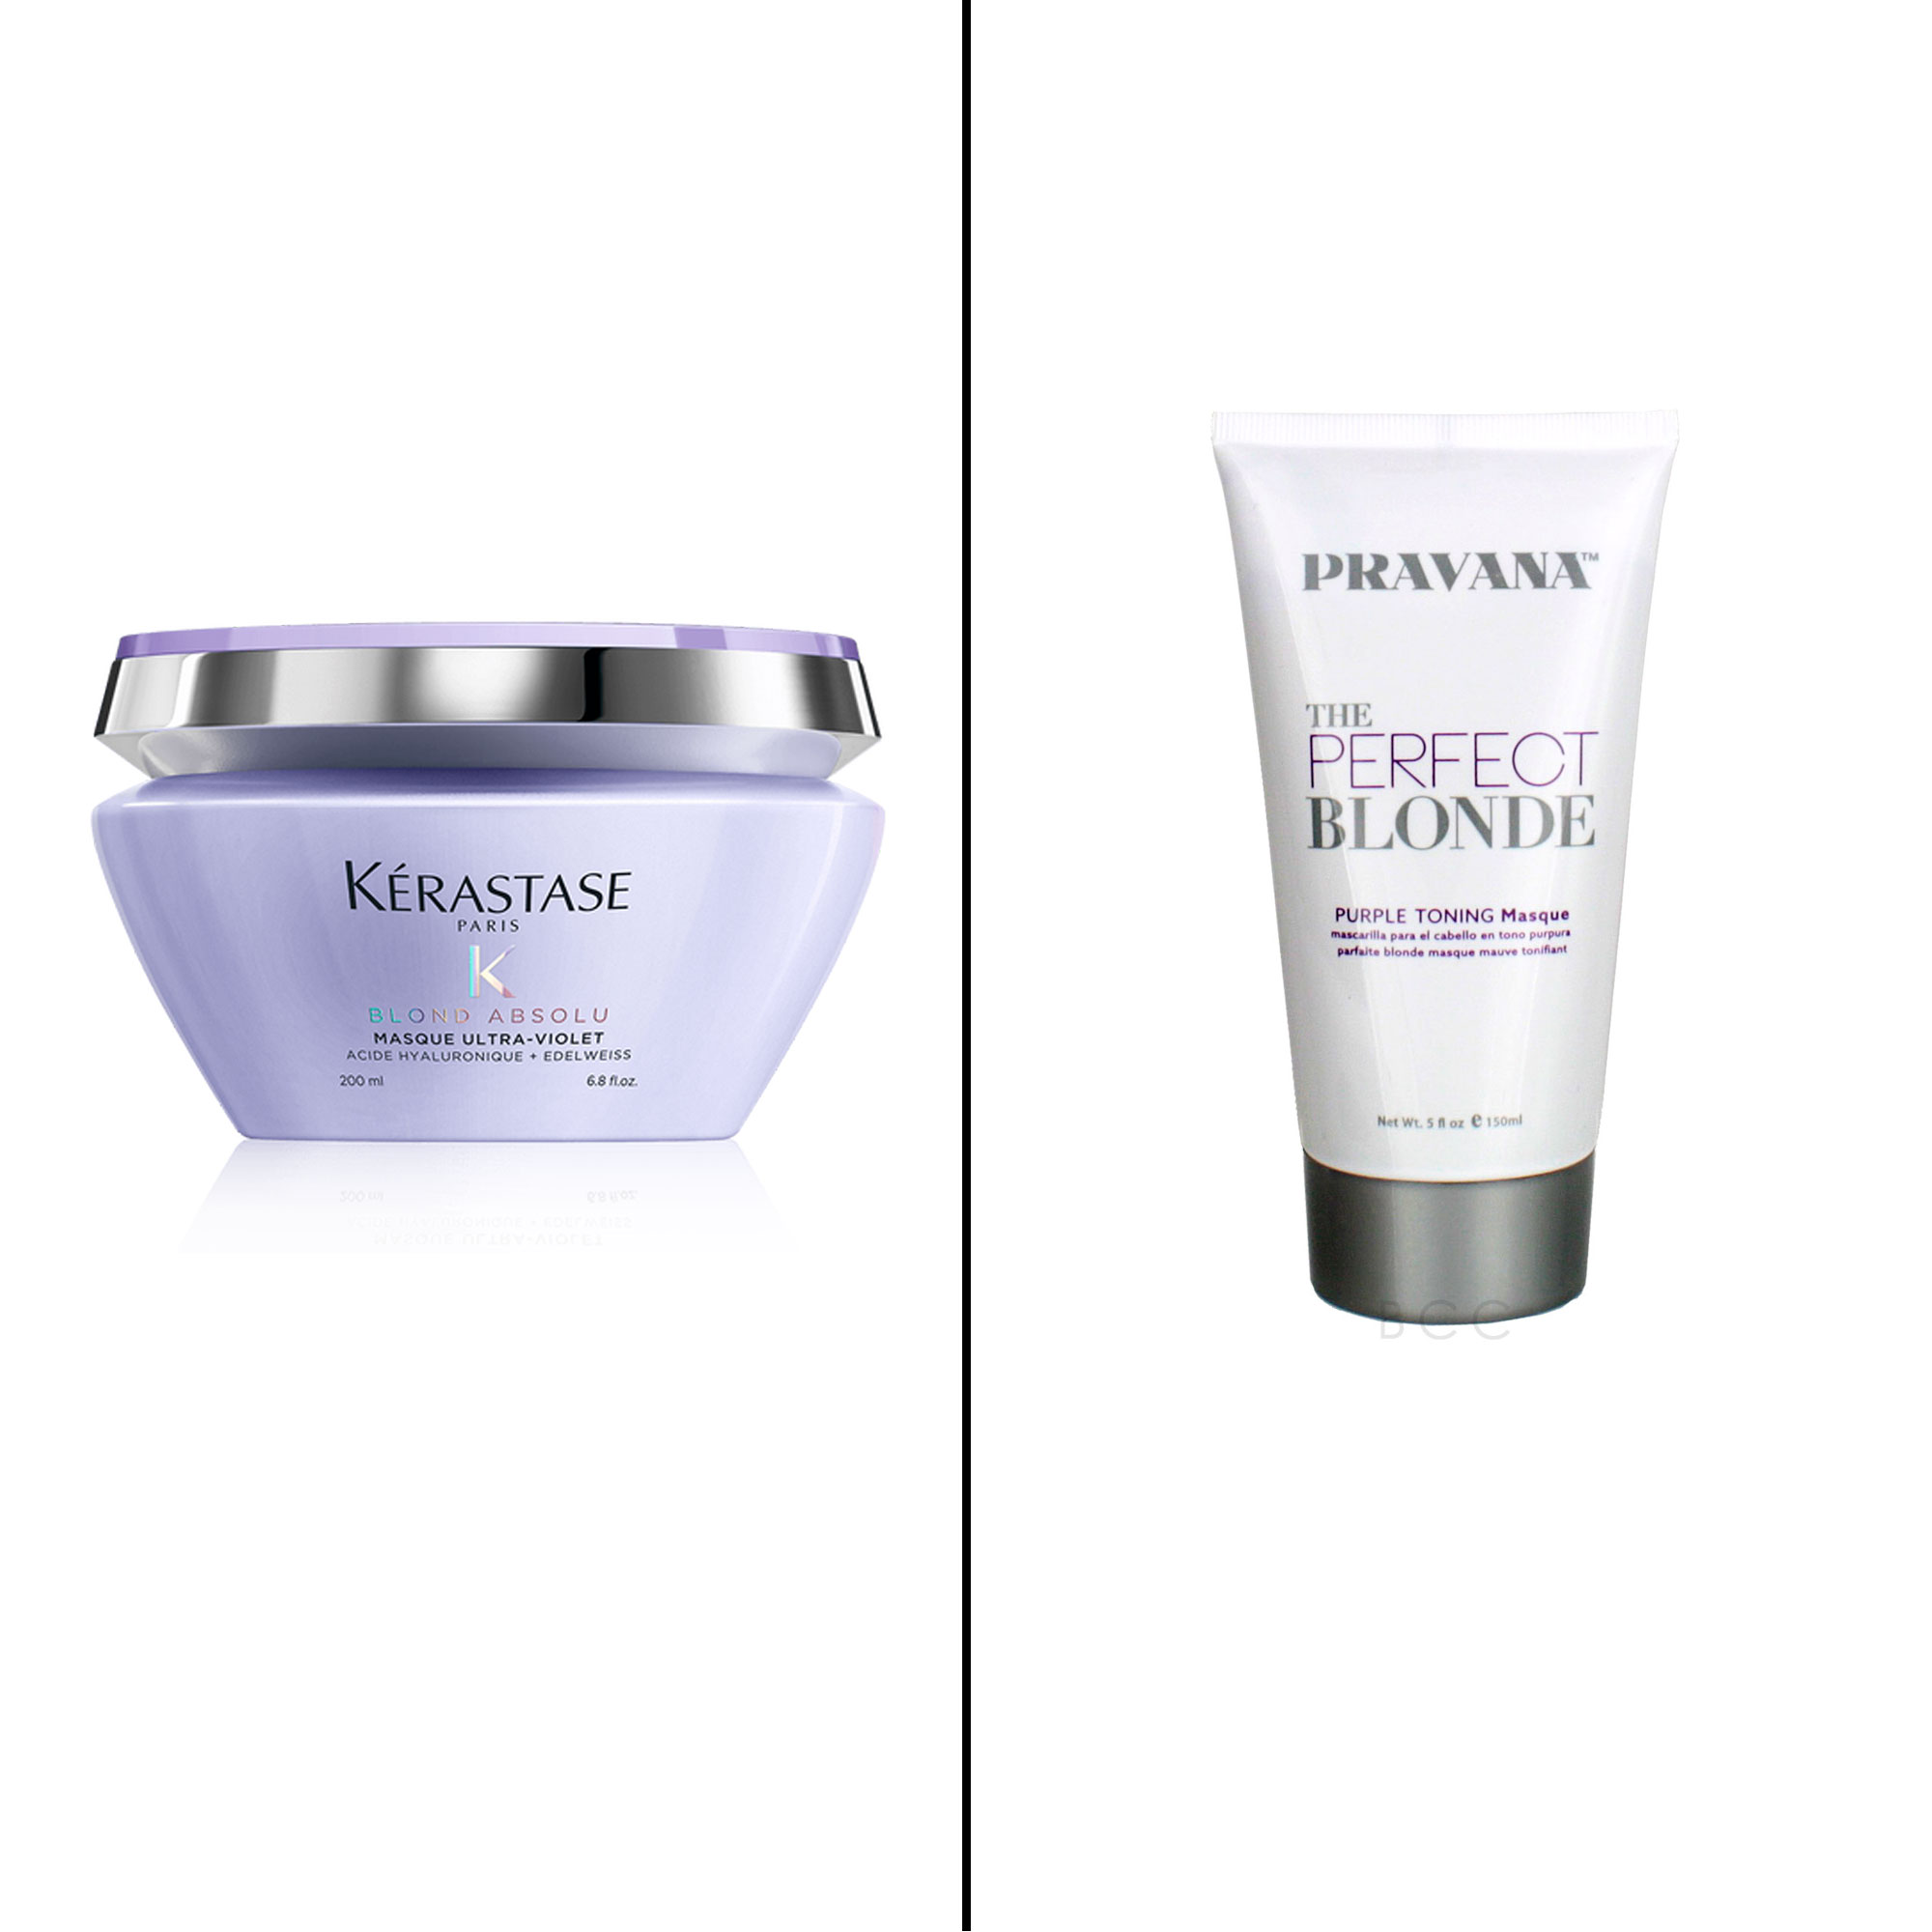 Splurge vs. Save: Salon-Worthy Hair Treatments For Every Type of Need - Splurge: Kerastase Blond Absolu Masque Ultra-Violet Purple Hair Masque The bright violet shade of this mask neutralizes brassy undertones for silky, cool blonde strands. $59, kerastase-use.com Save: Pravana The Perfect Blonde Masque Using the same color-correcting technique, this purple mask tones blonde and silver highlights for the perfect cool shade.